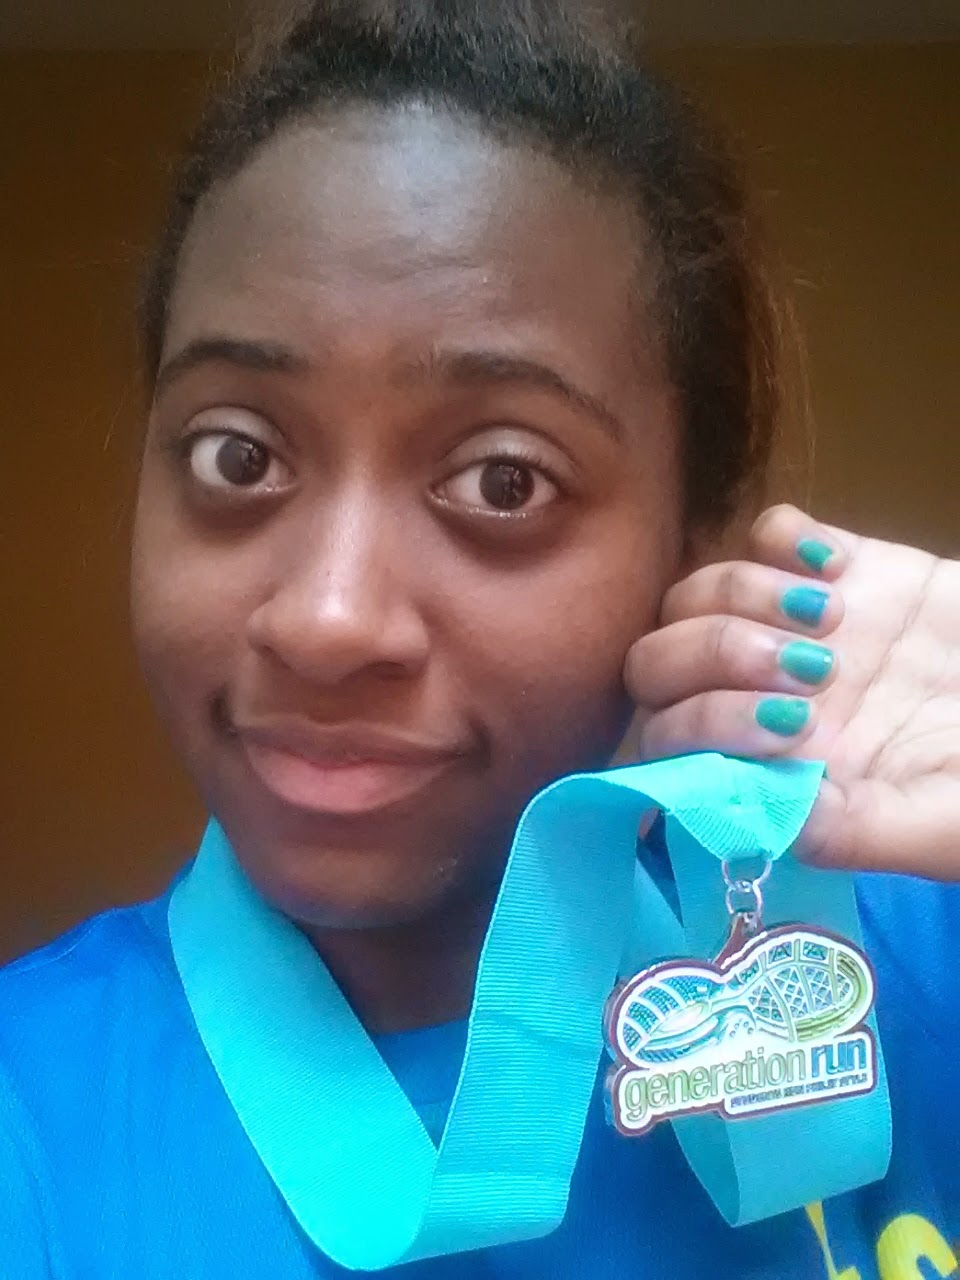 Girl holding a medal near her face